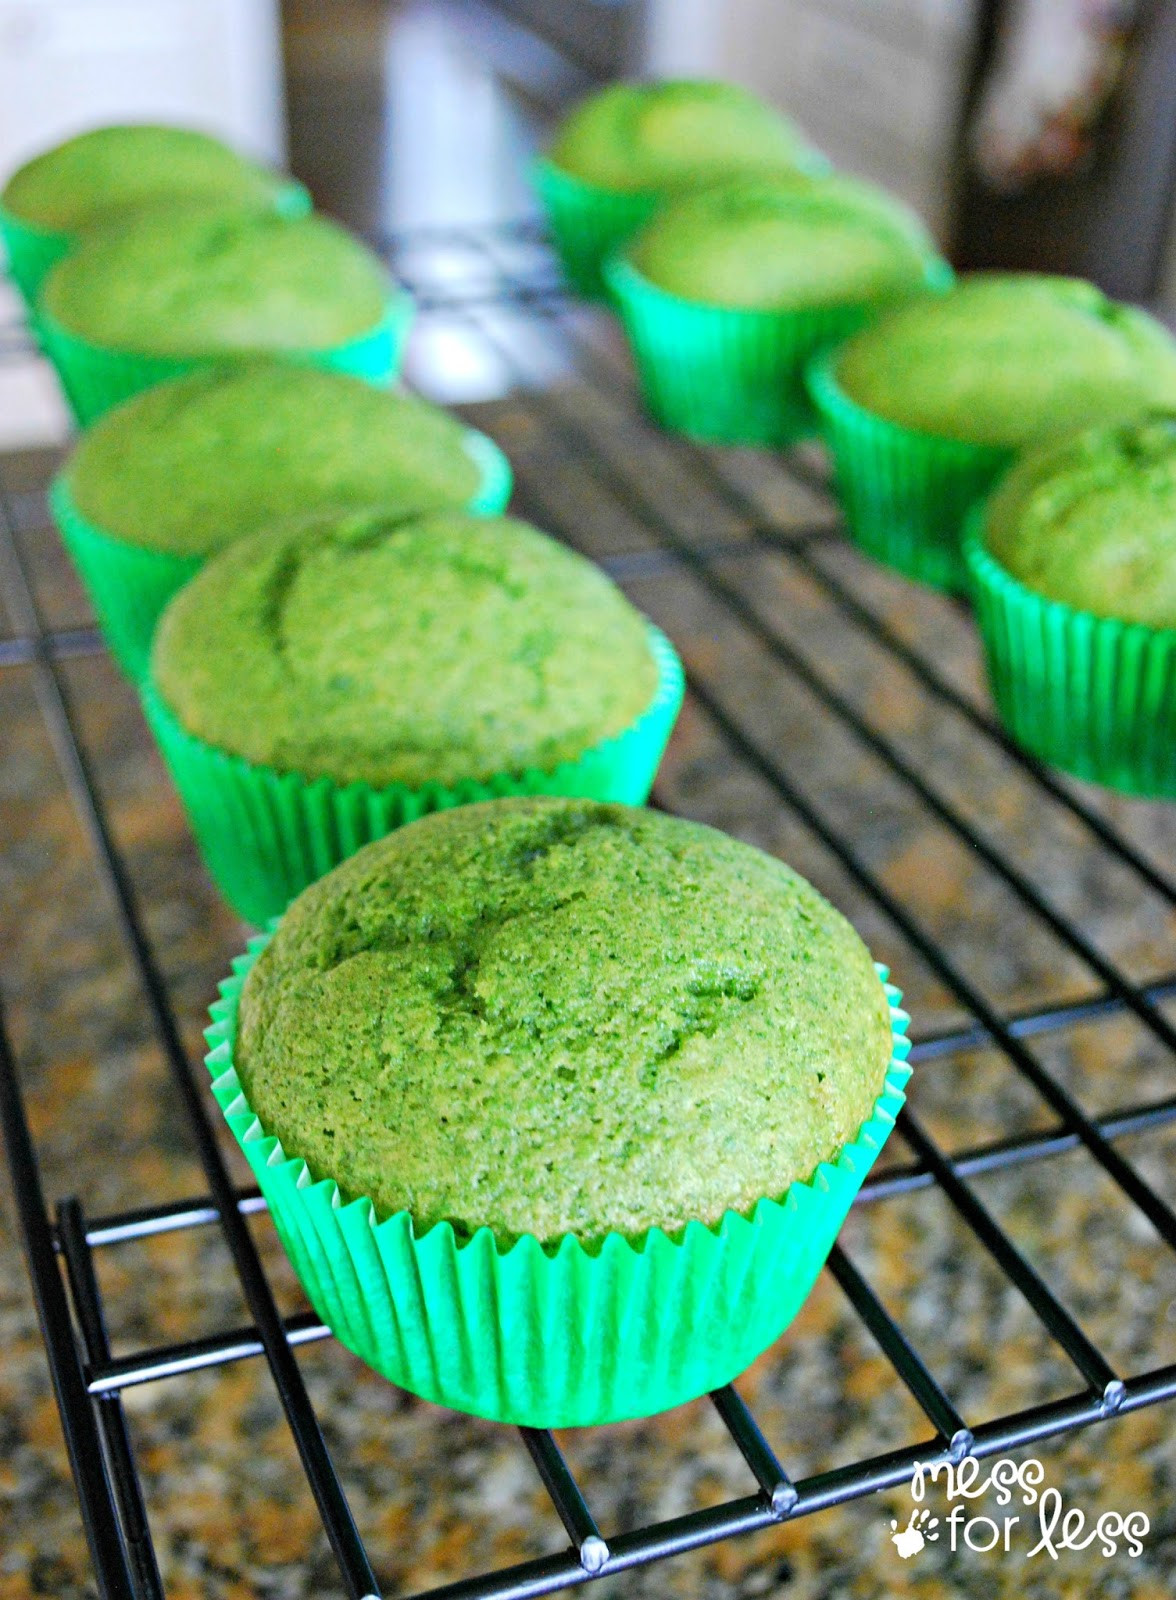 Healthy Breakfast Muffins For Kids  8 Healthy Muffin Recipes for Breakfast MOMables